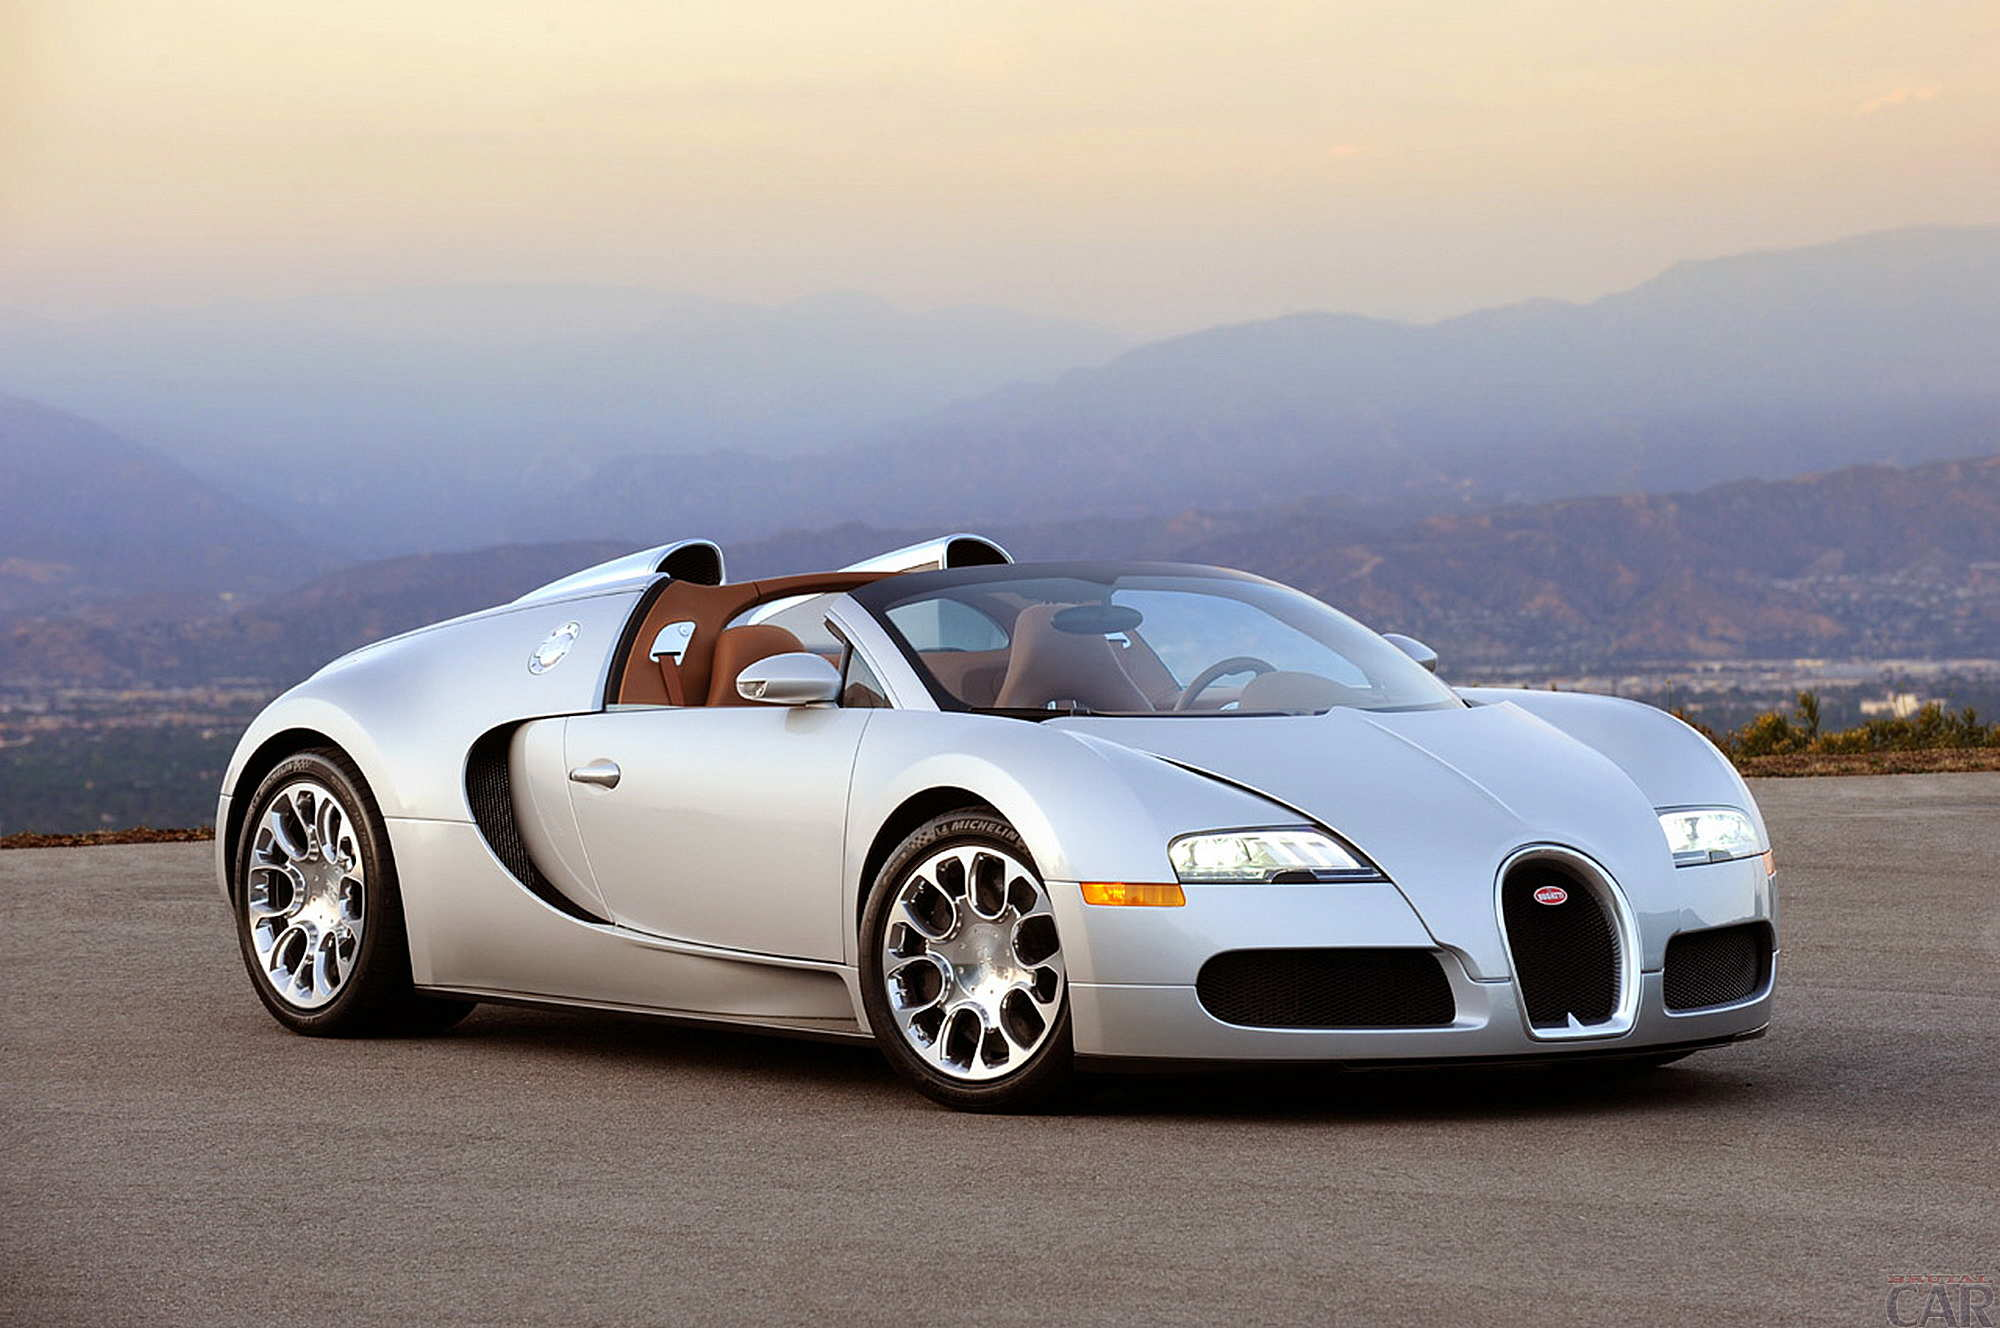 Cars wallpaper hd. Download tuned cars